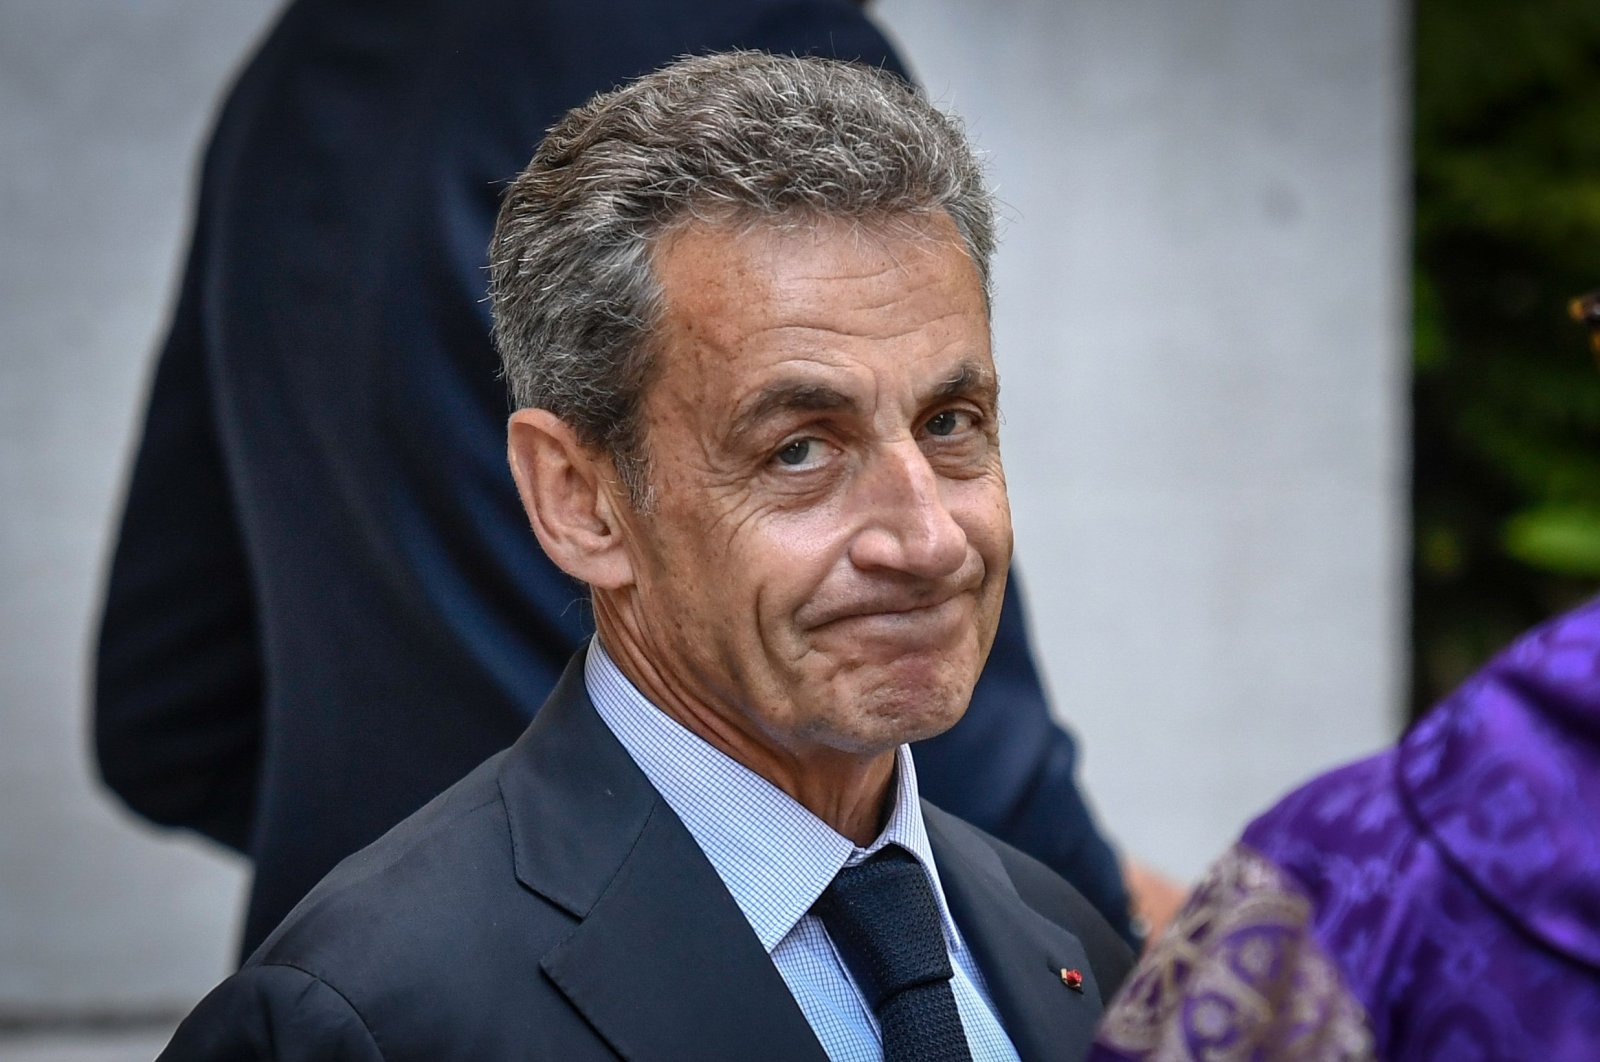 Former French President Nicolas Sarkozy leaves the mass for the funeral of late French Justice Minister Pascal Clement at Saint Peter's Church in Neuilly-sur-Seine, France, June 25, 2020. (AFP Photo)